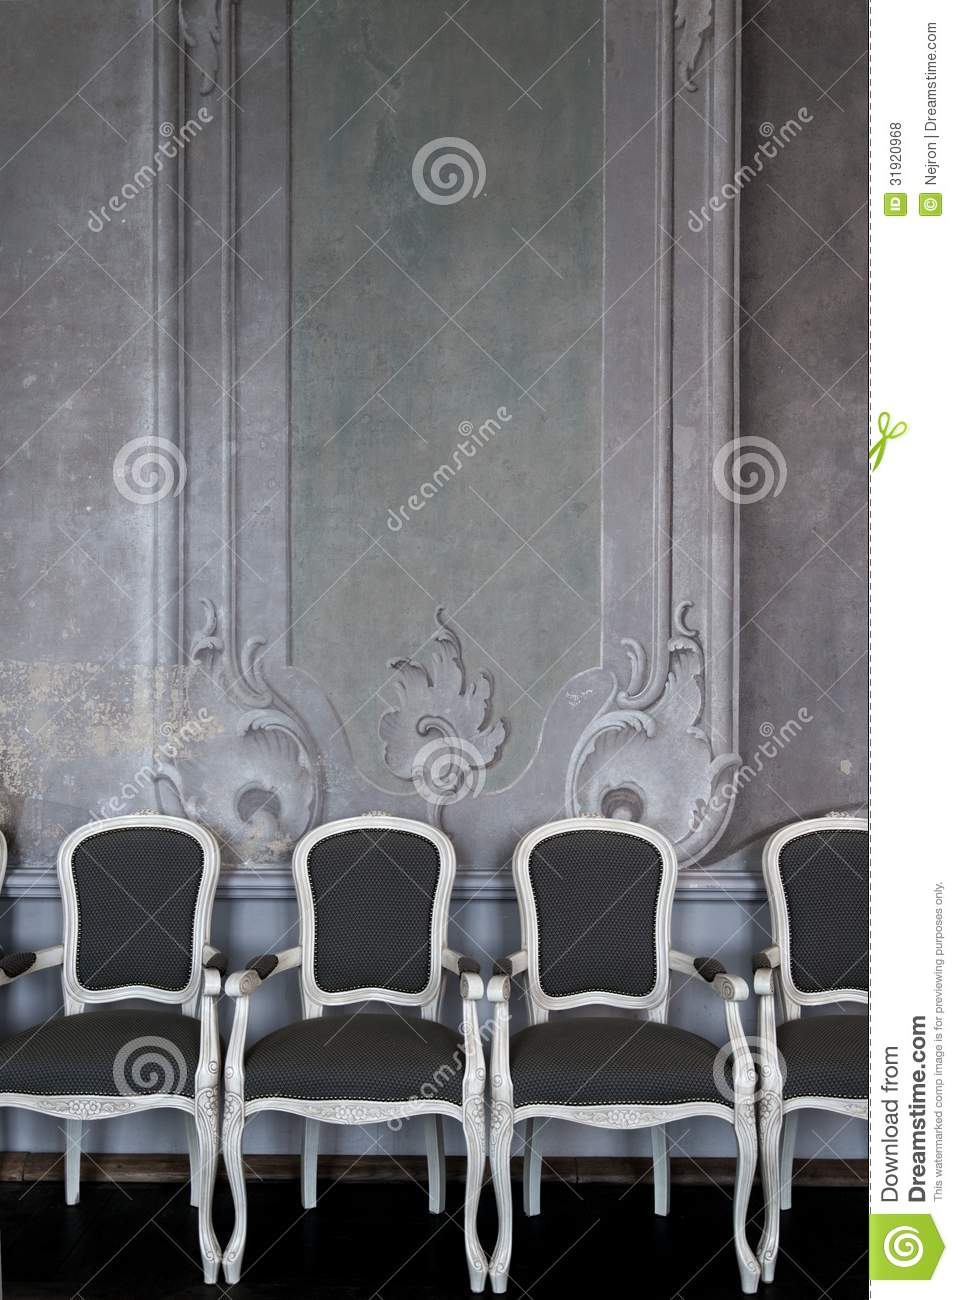 chairs near wall royalty free stock photos image 31920968. Black Bedroom Furniture Sets. Home Design Ideas